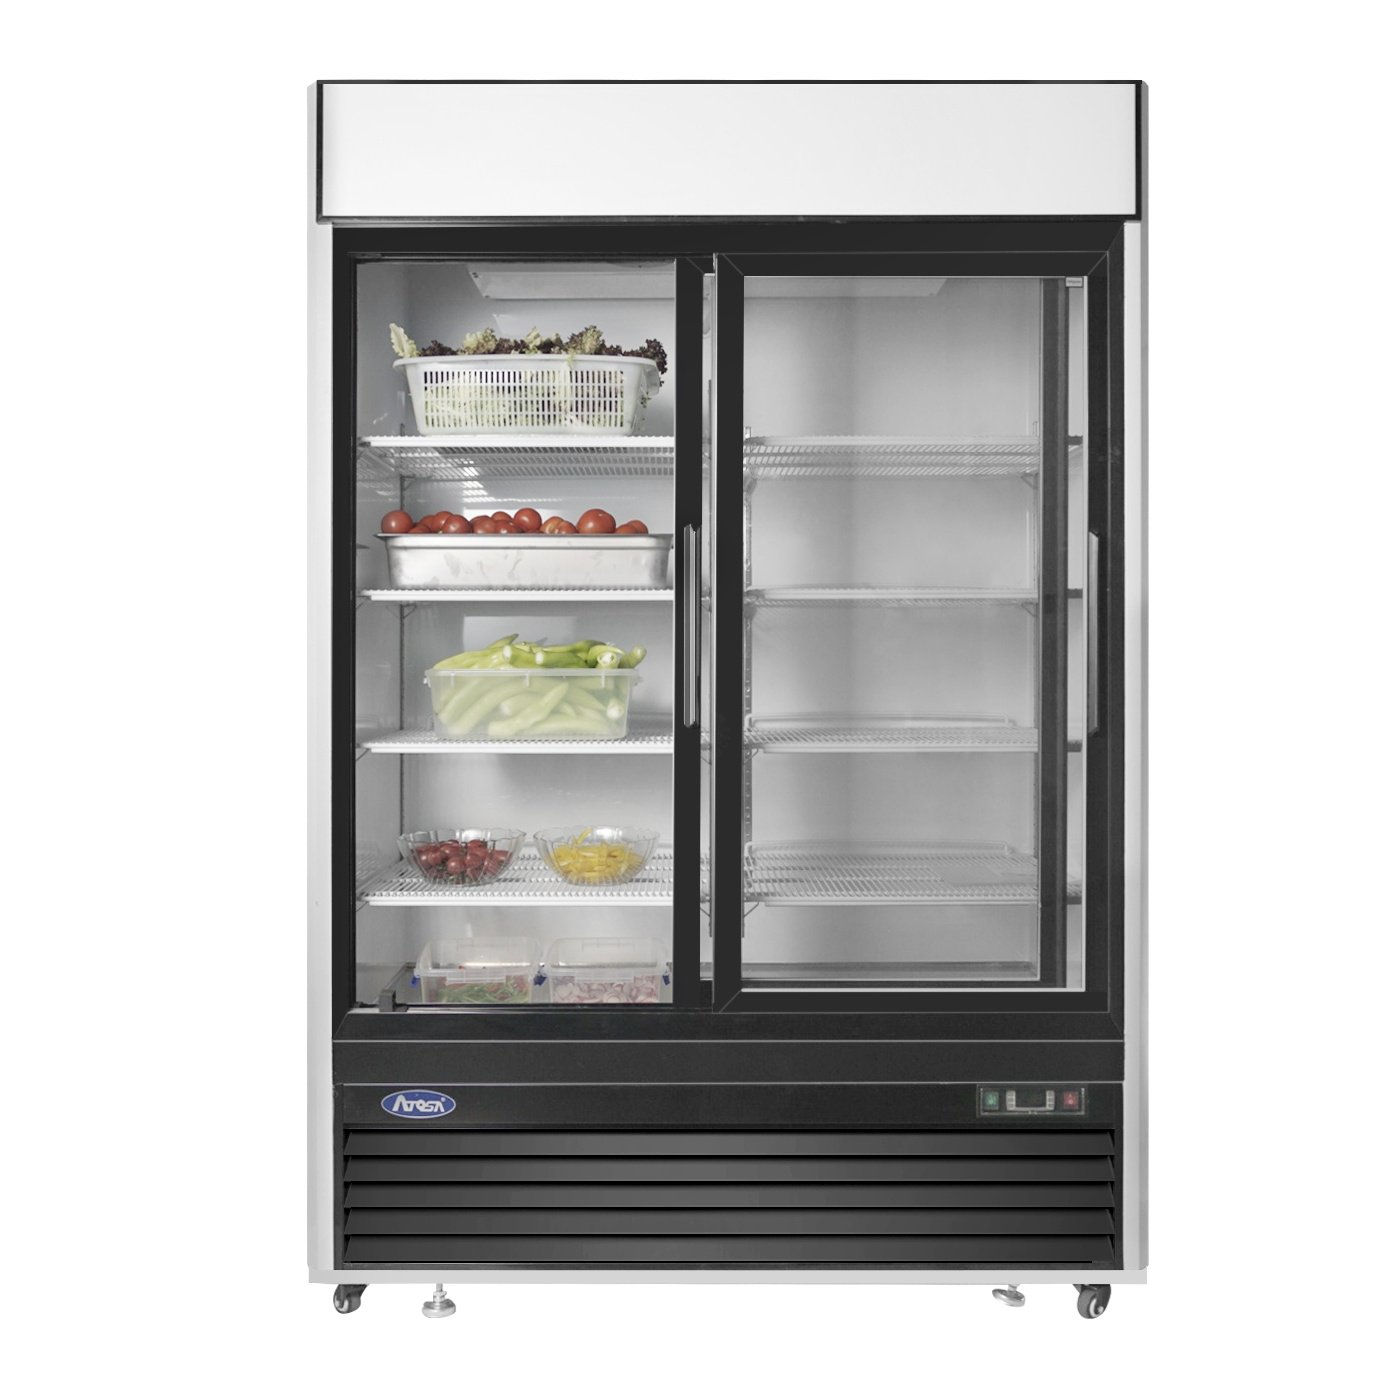 Amazoncom Commercial Refrigerator,Atosa Mcf8709 Double 2 Sliding Door Showcase Glass